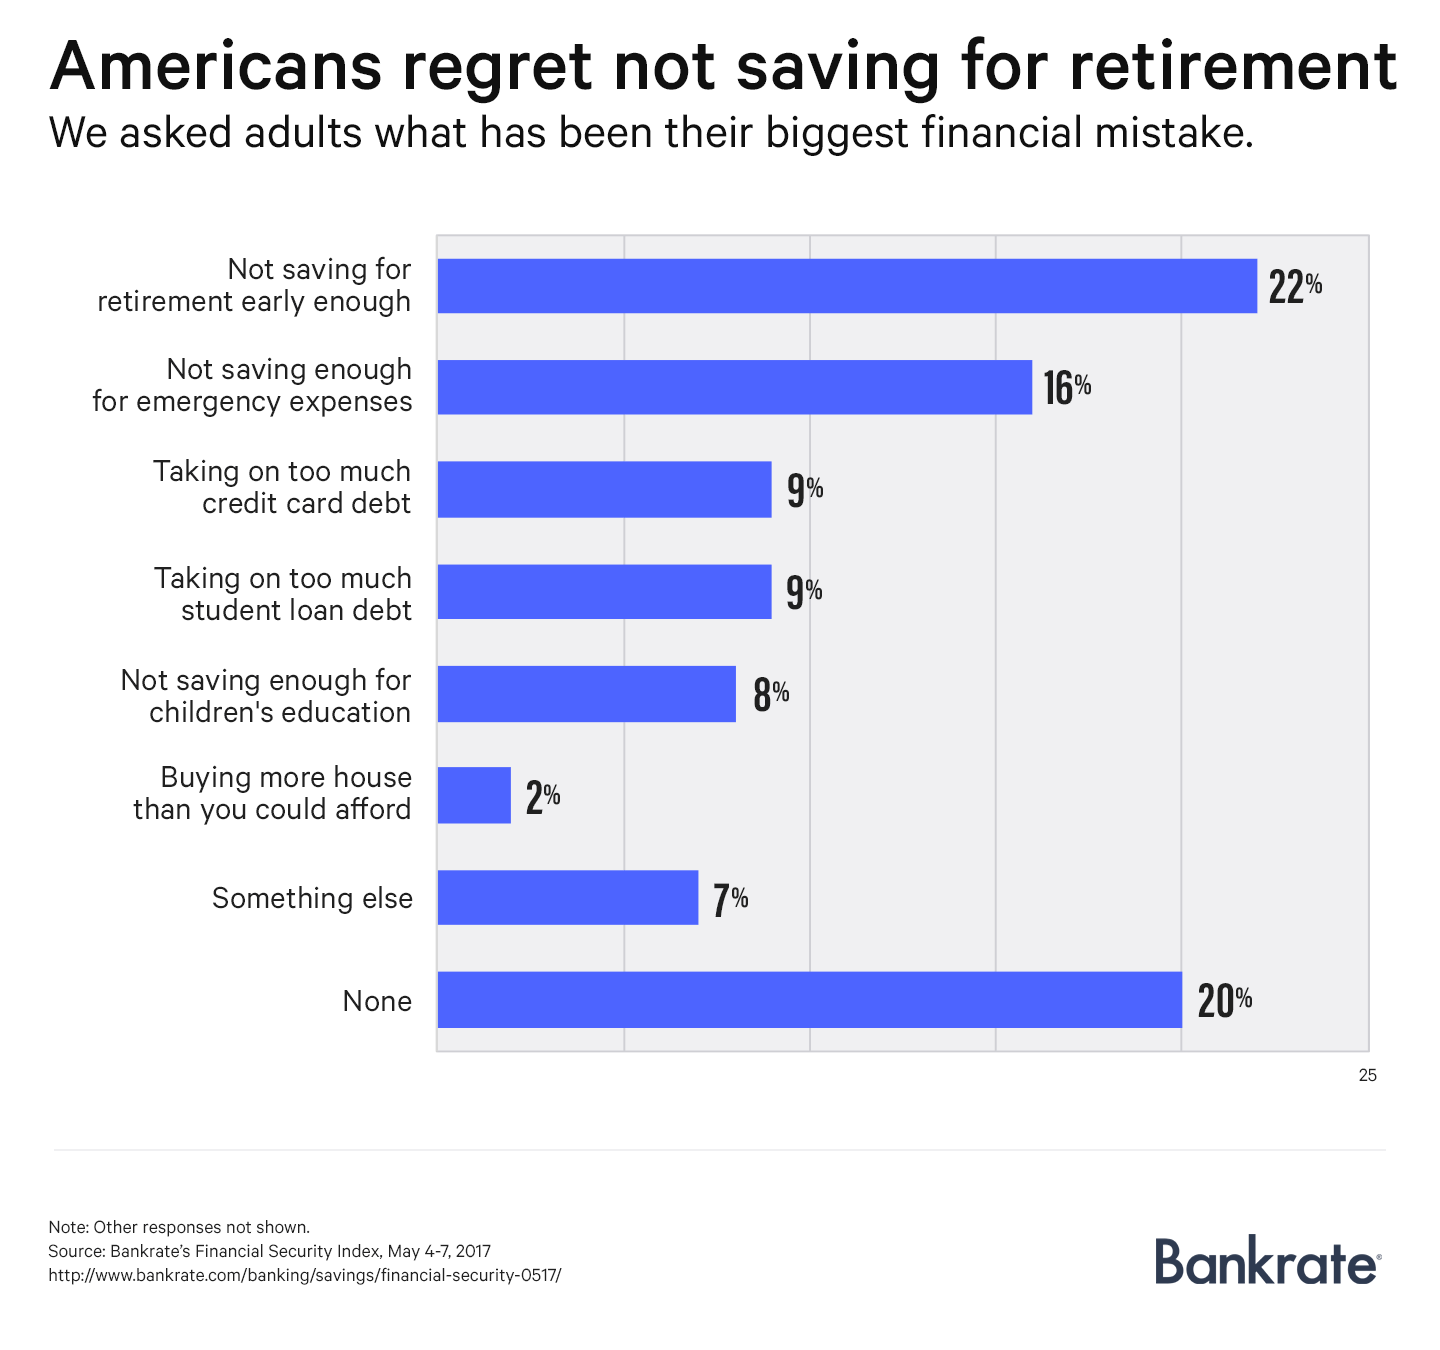 Americans regret not saving for retirement